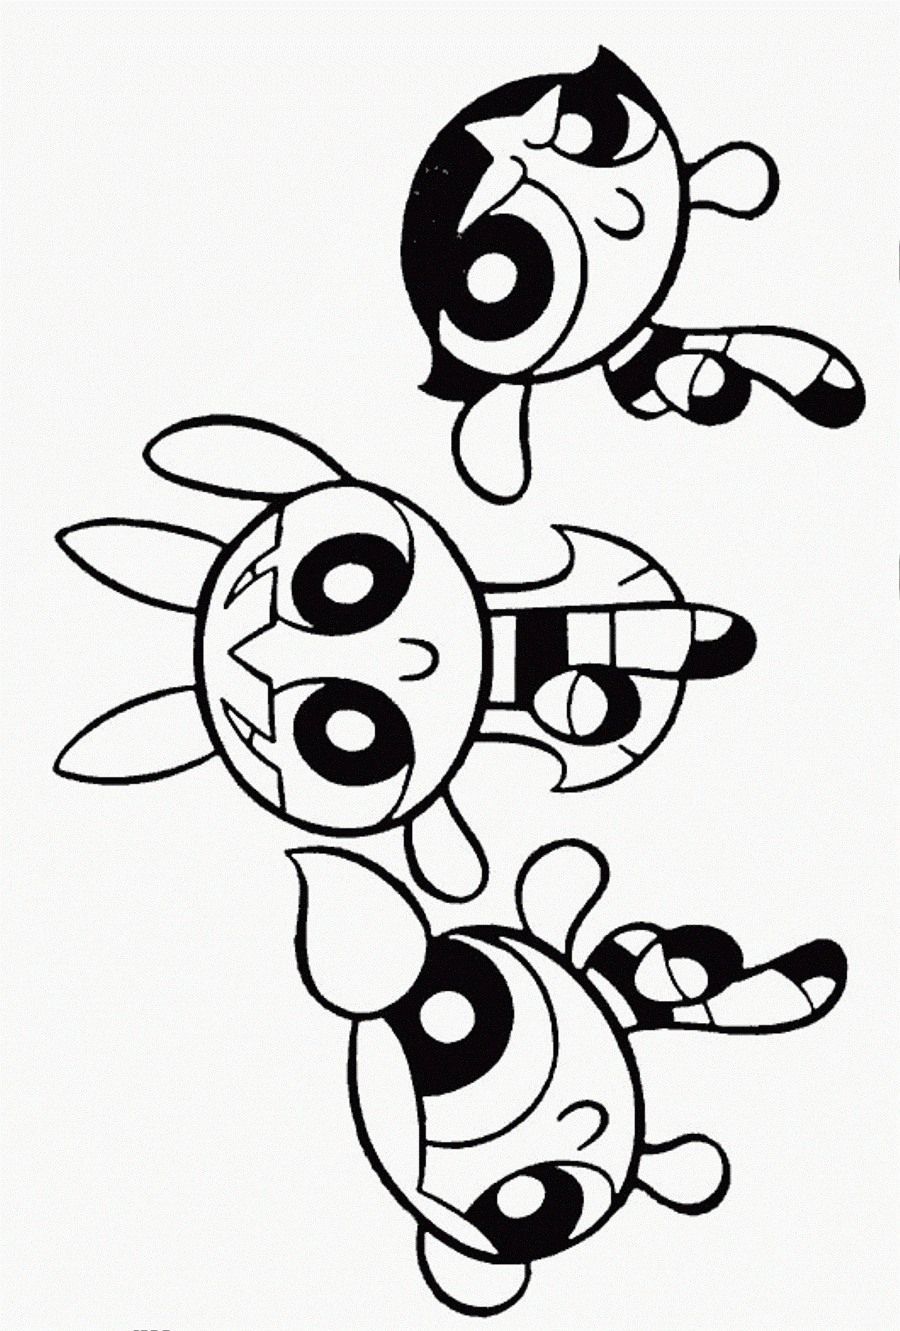 Powerpuff Girls Coloring Pages Free Printable Powerpuff Girls Coloring Pages For Kids For Girls